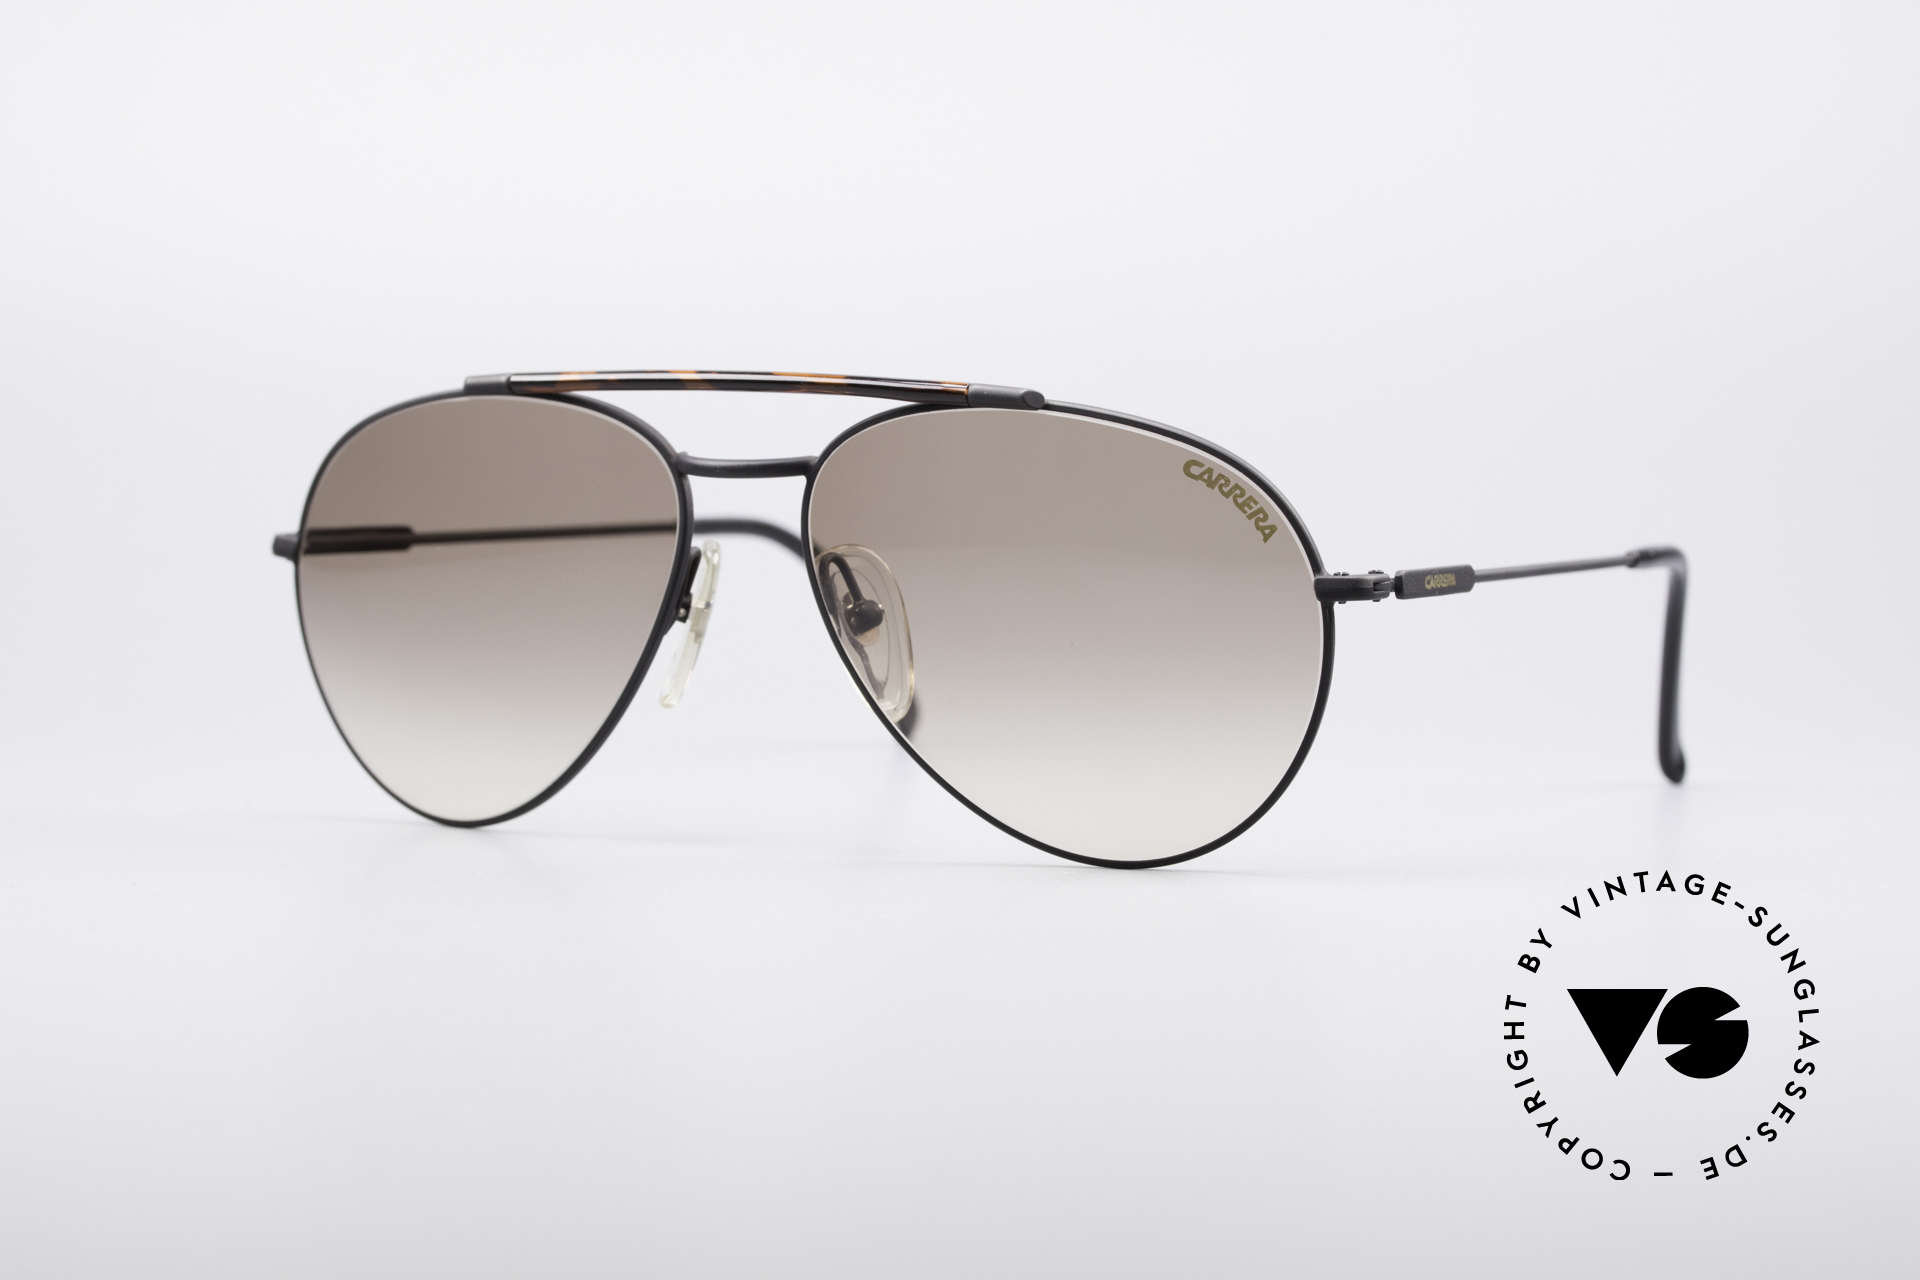 Carrera 5349 True Vintage 80's Shades, classic vintage 80's designer sunglasses by Carrera, Made for Men